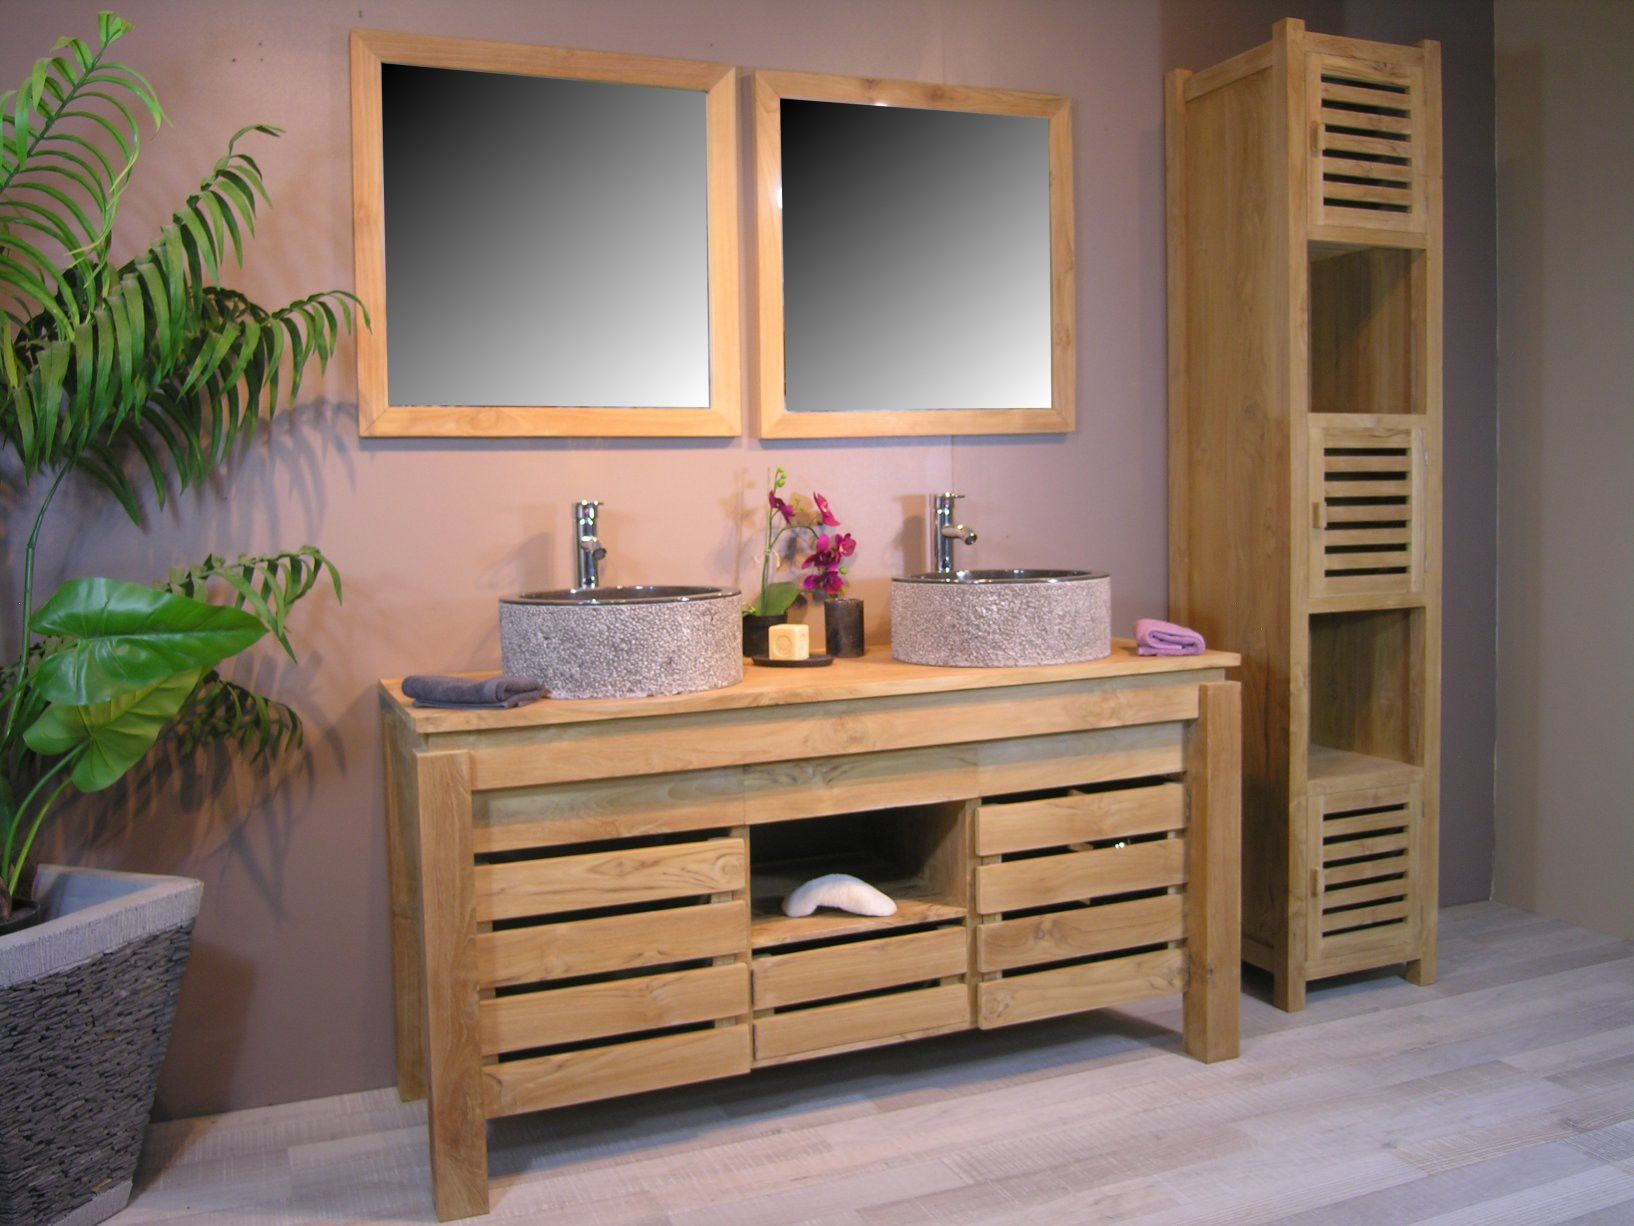 Meuble Salle De Bain En Teck Pas Cher 2 Double Vasque Zen Promo Bois Home Decor Teak Bathroom Cool Furniture